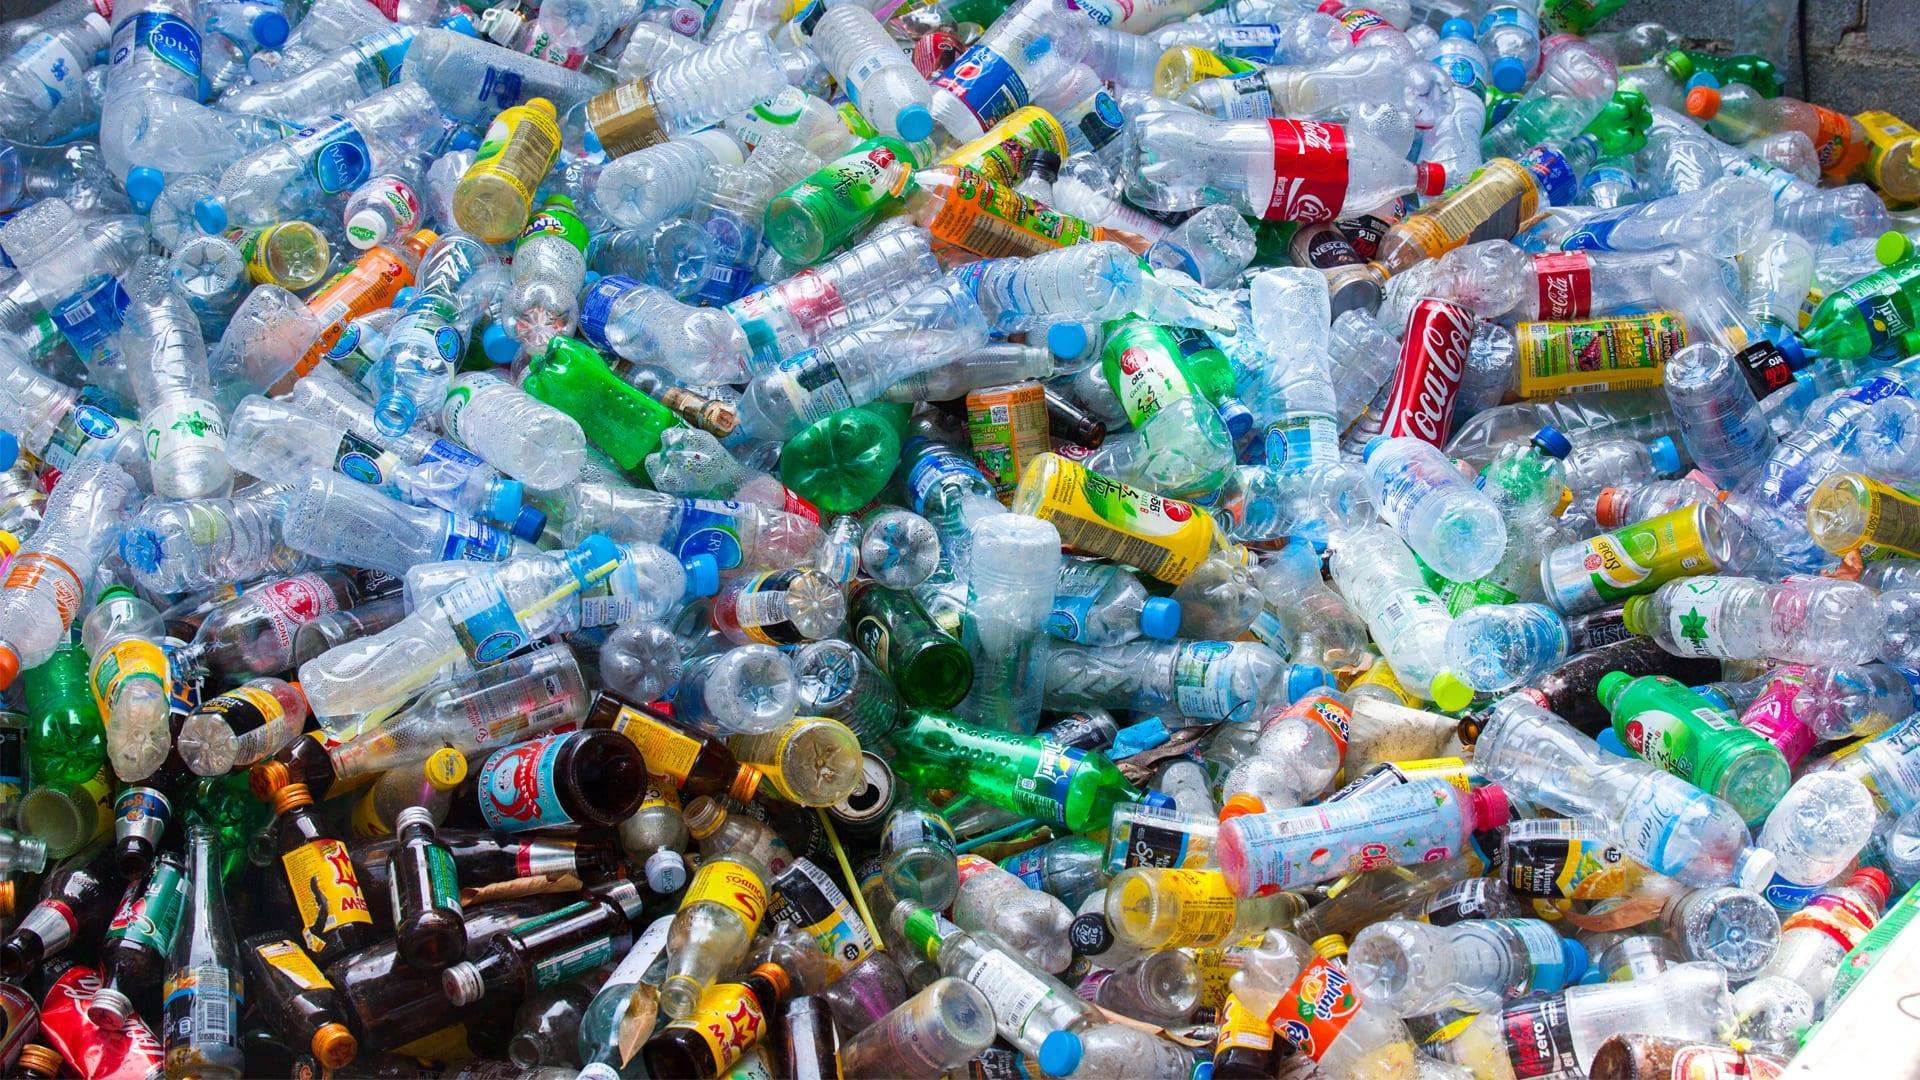 Plastic pollution: the UK industrial strategy innovations